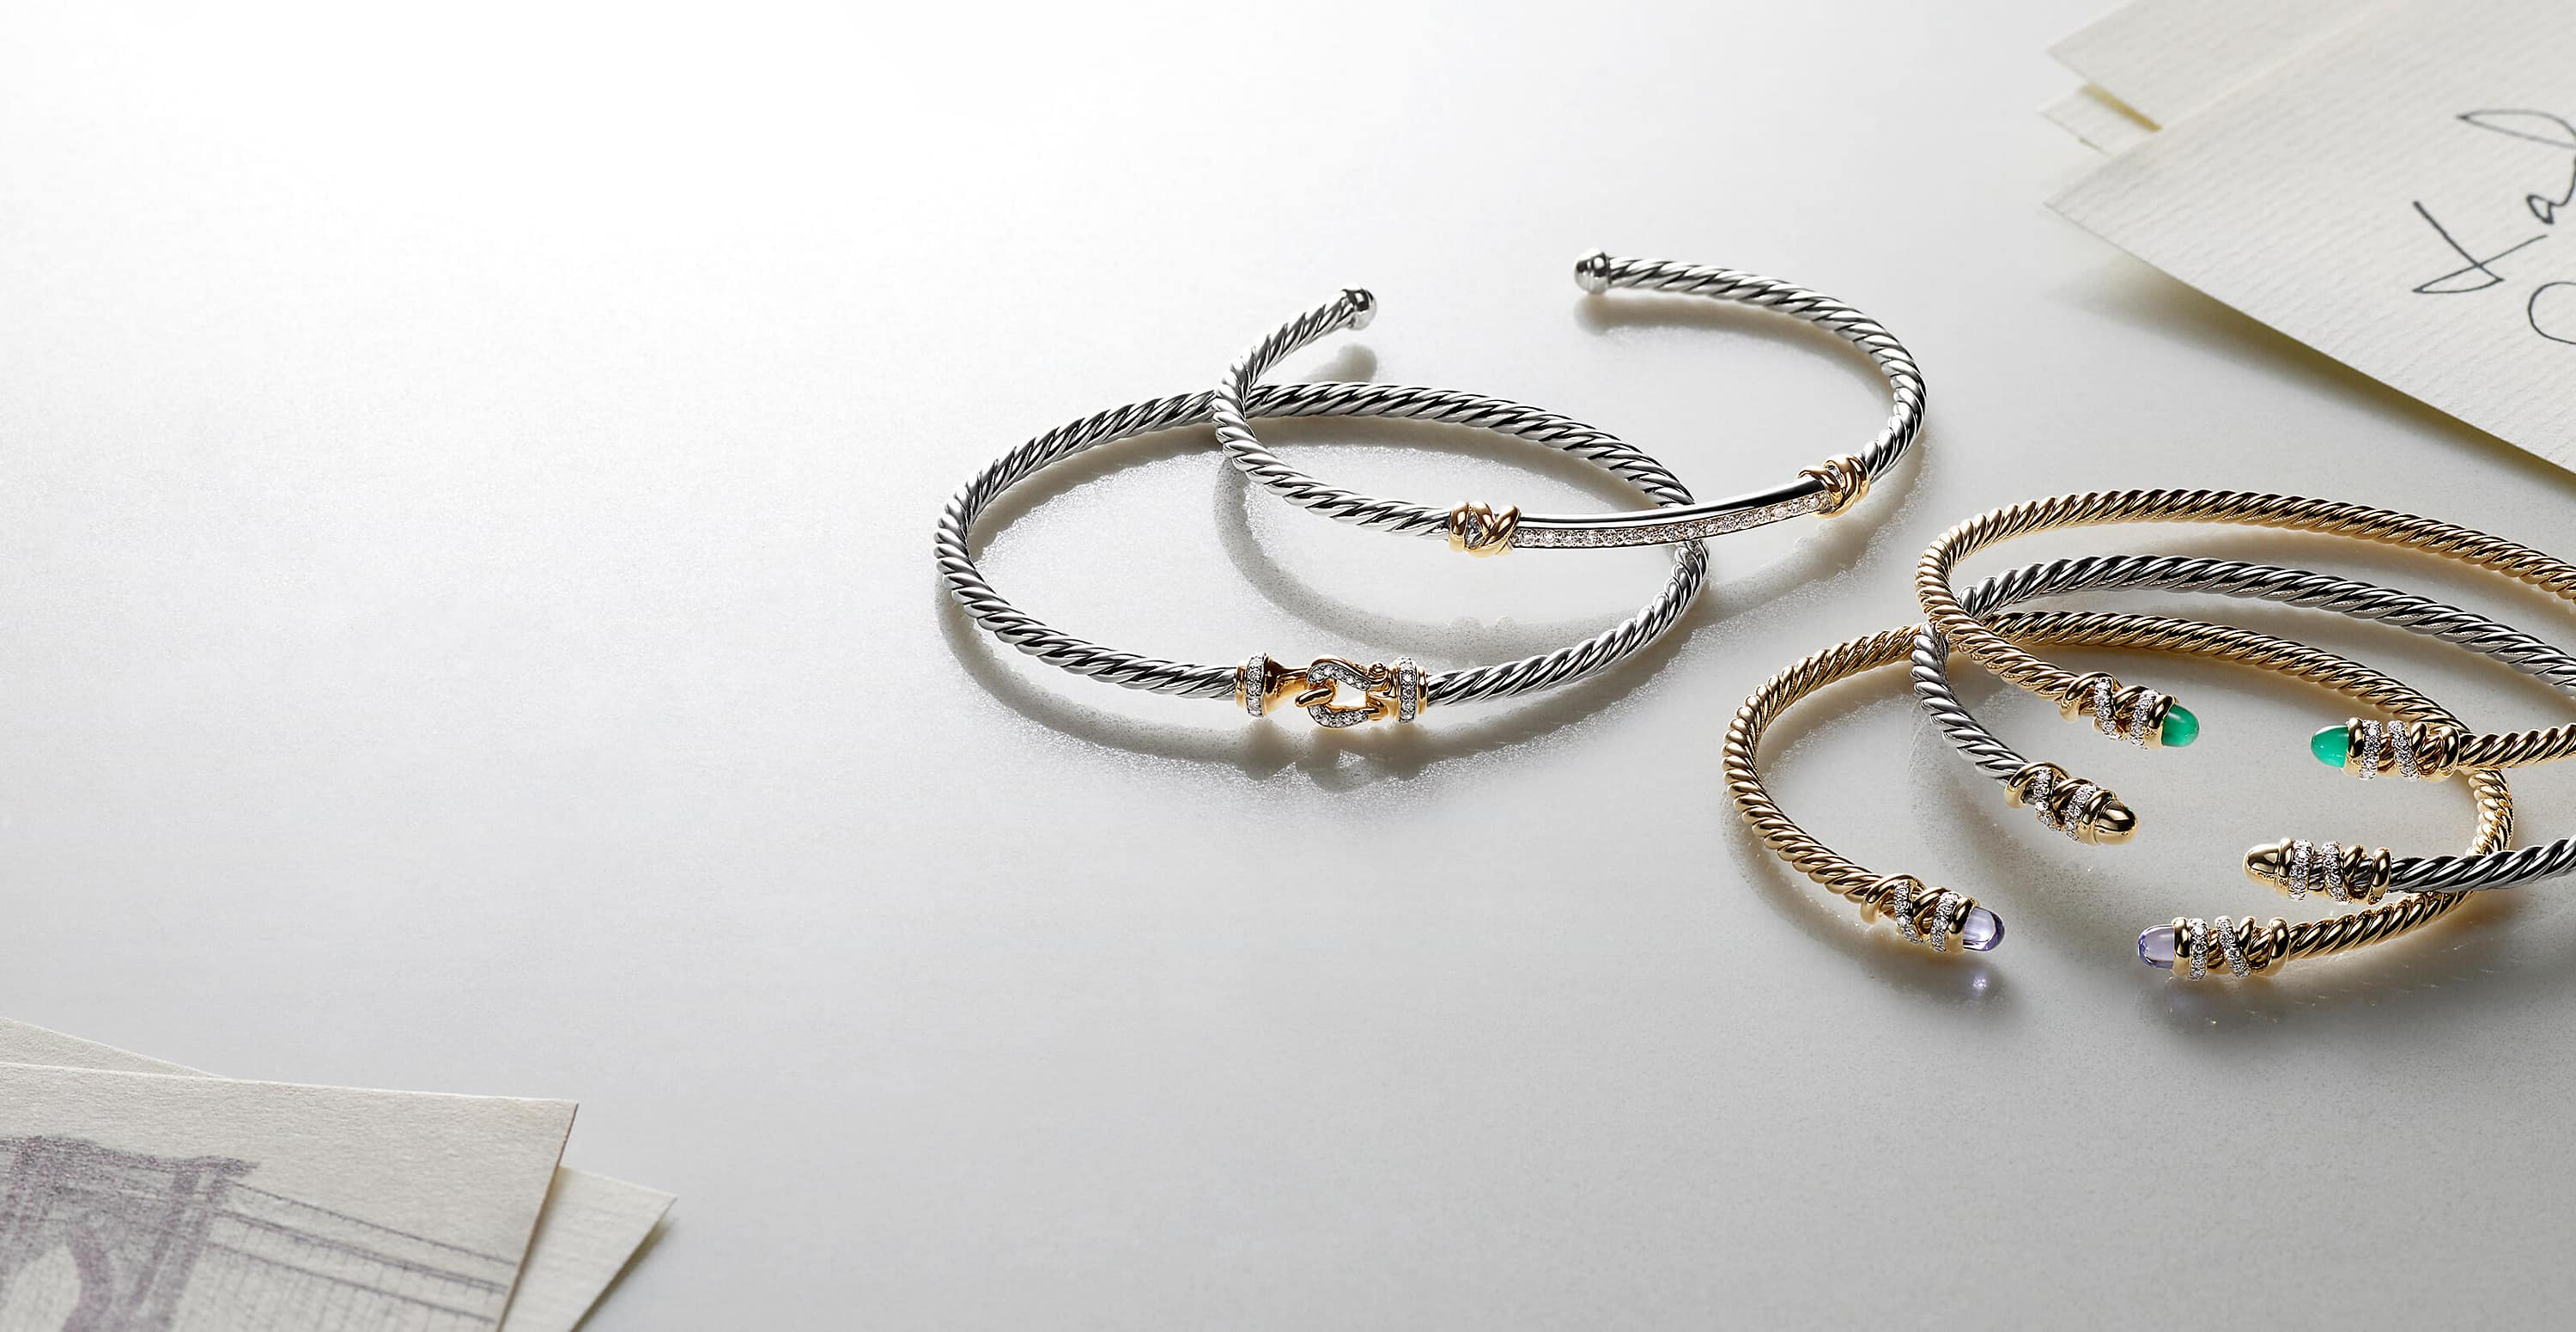 A color photo shows five David Yurman bracelets from the Helena and Buckle collections scattered on a white backdrop next to a stack of white notecards with handwriting and a black-and-white postcard of a bridge. Two of the women's bracelets are crafted from 18K yellow gold with pavé diamond or emerald accents. Three of the women's bracelets are crafted from sterling silver with 18K yellow gold and pavé diamond accents.